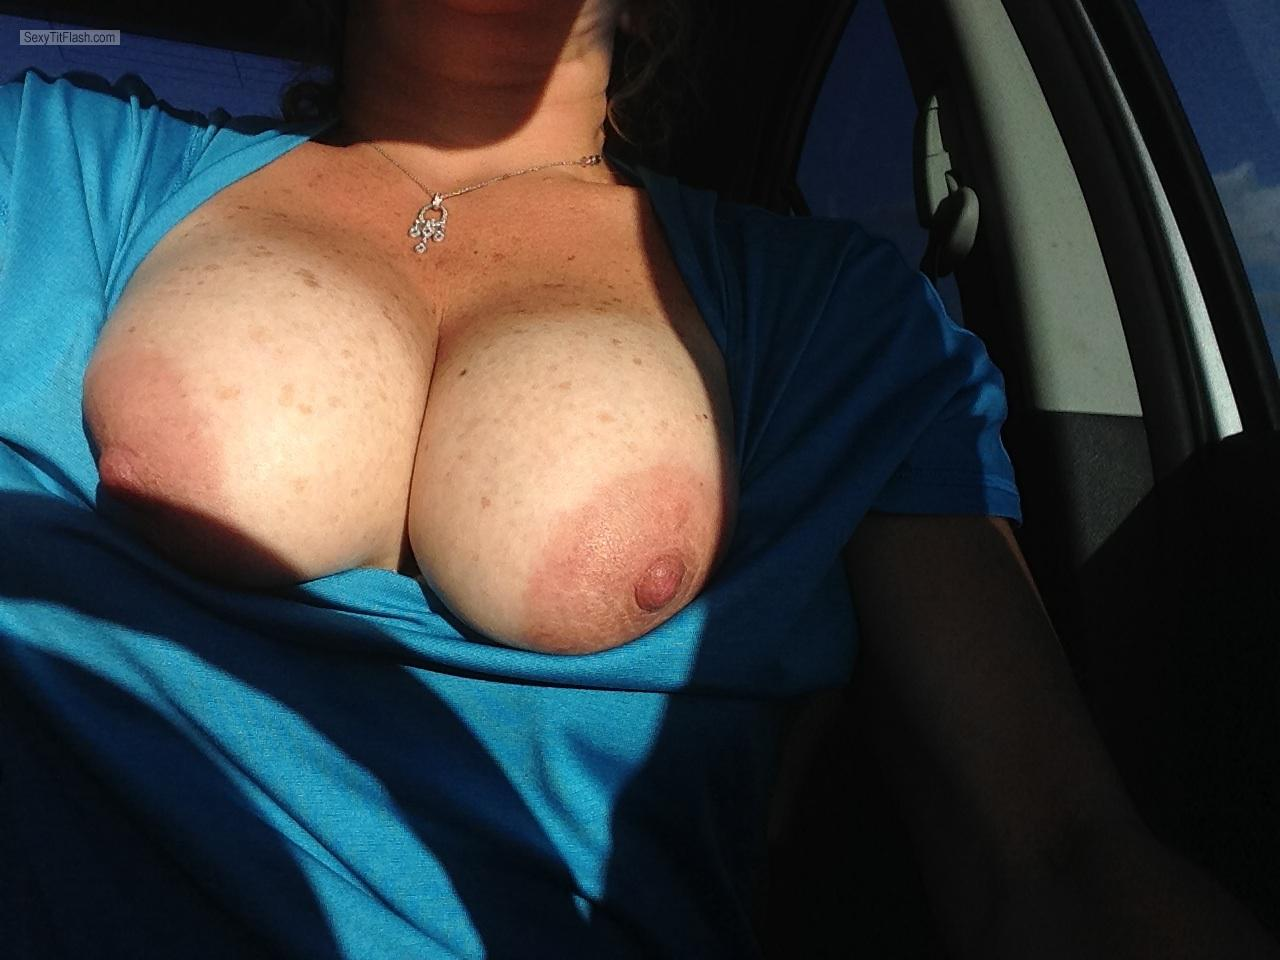 My Big Tits Selfie by Pjs